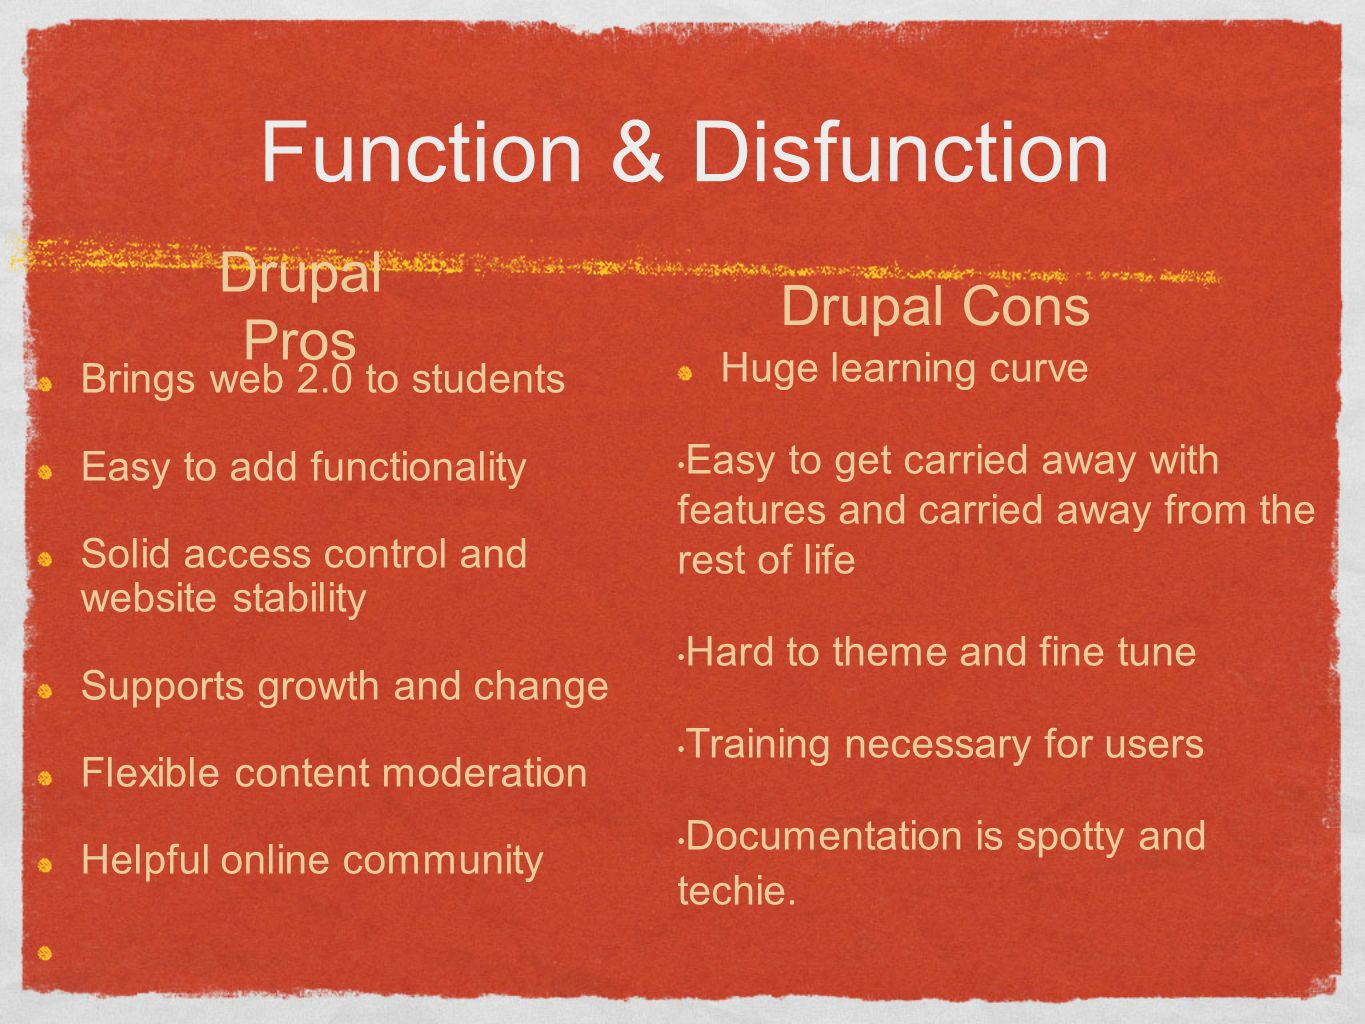 Function & Disfunction Brings web 2.0 to students Easy to add functionality Solid access control and website stability Supports growth and change Flexible content moderation Helpful online community Drupal Pros Drupal Cons Huge learning curve Easy to get carried away with features and carried away from the rest of life Hard to theme and fine tune Training necessary for users Documentation is spotty and techie.